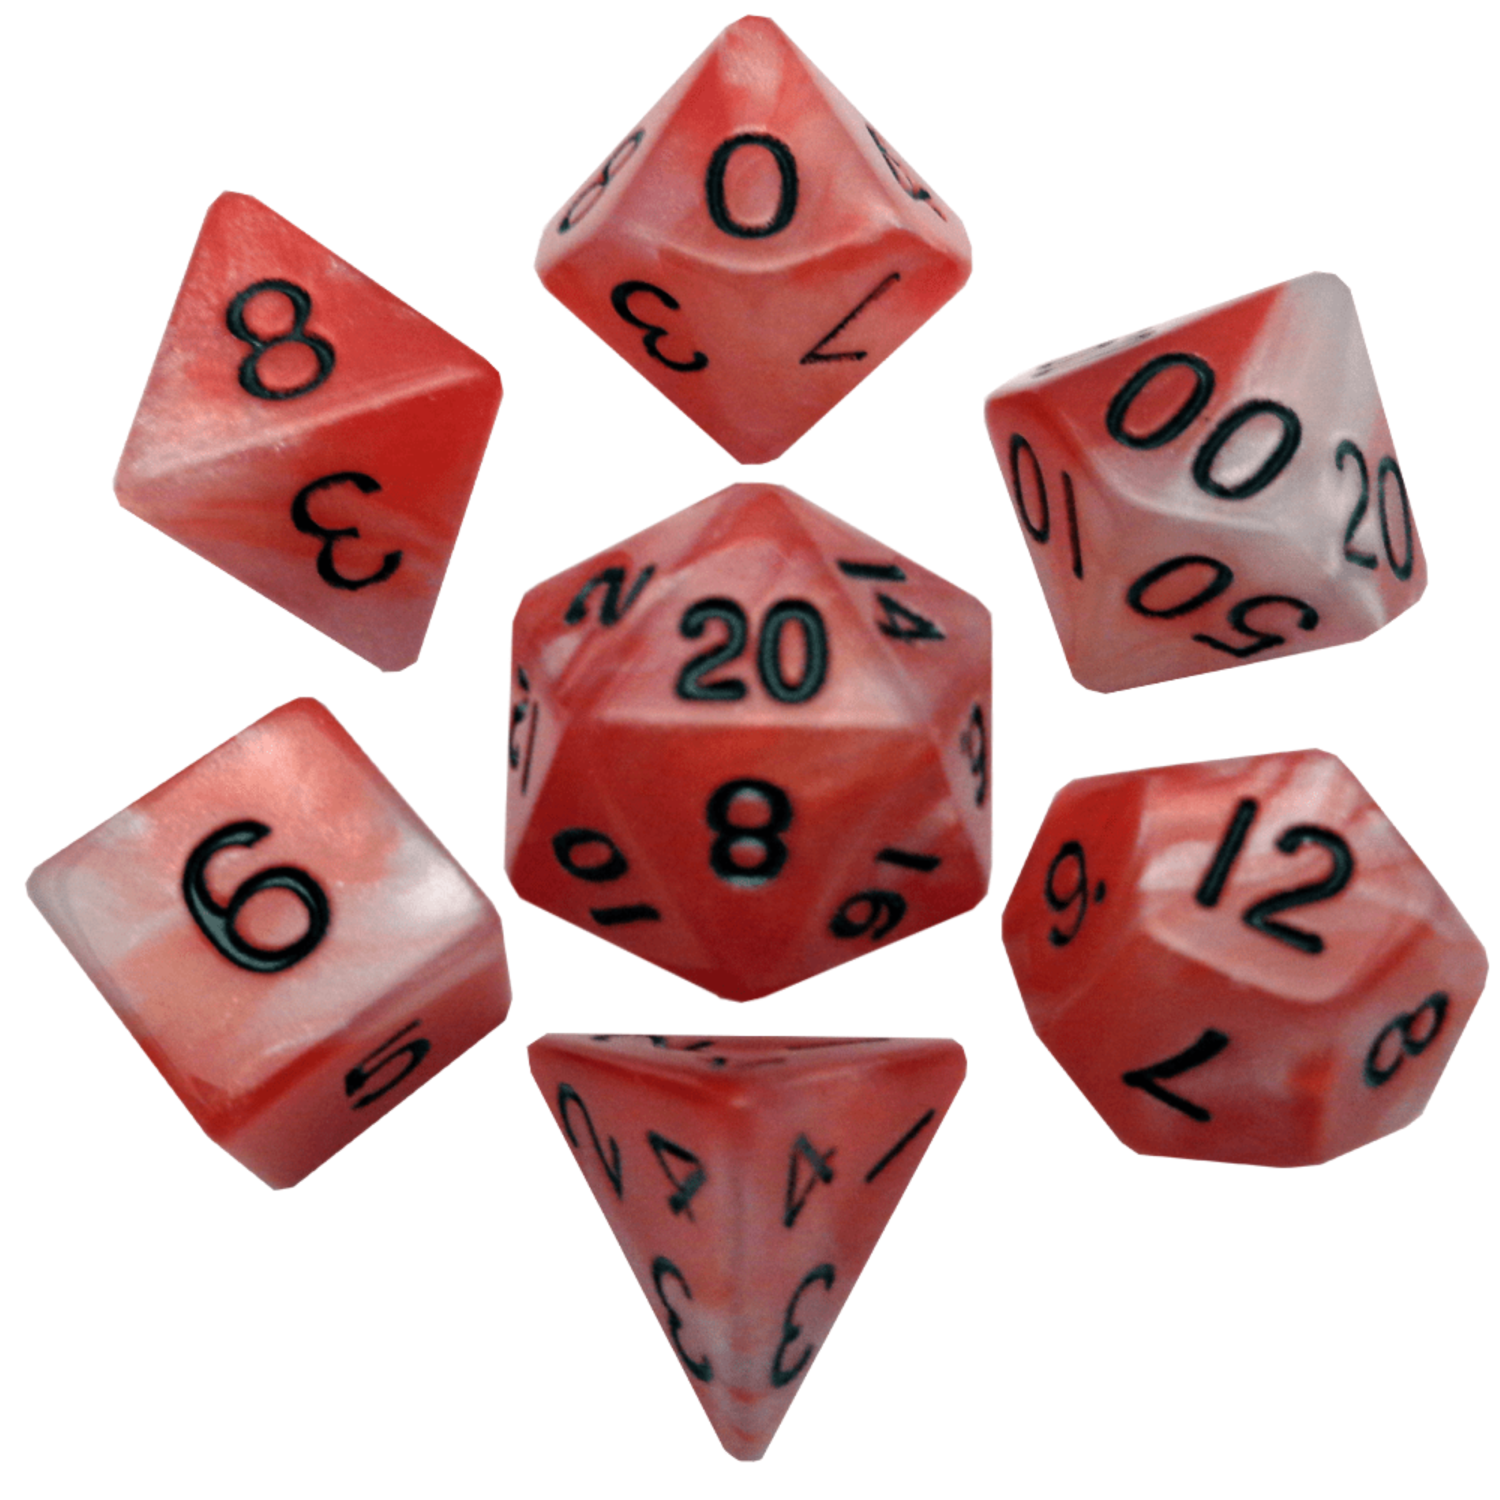 Red/White with Black Numbers 16mm Polyhedral Dice Set